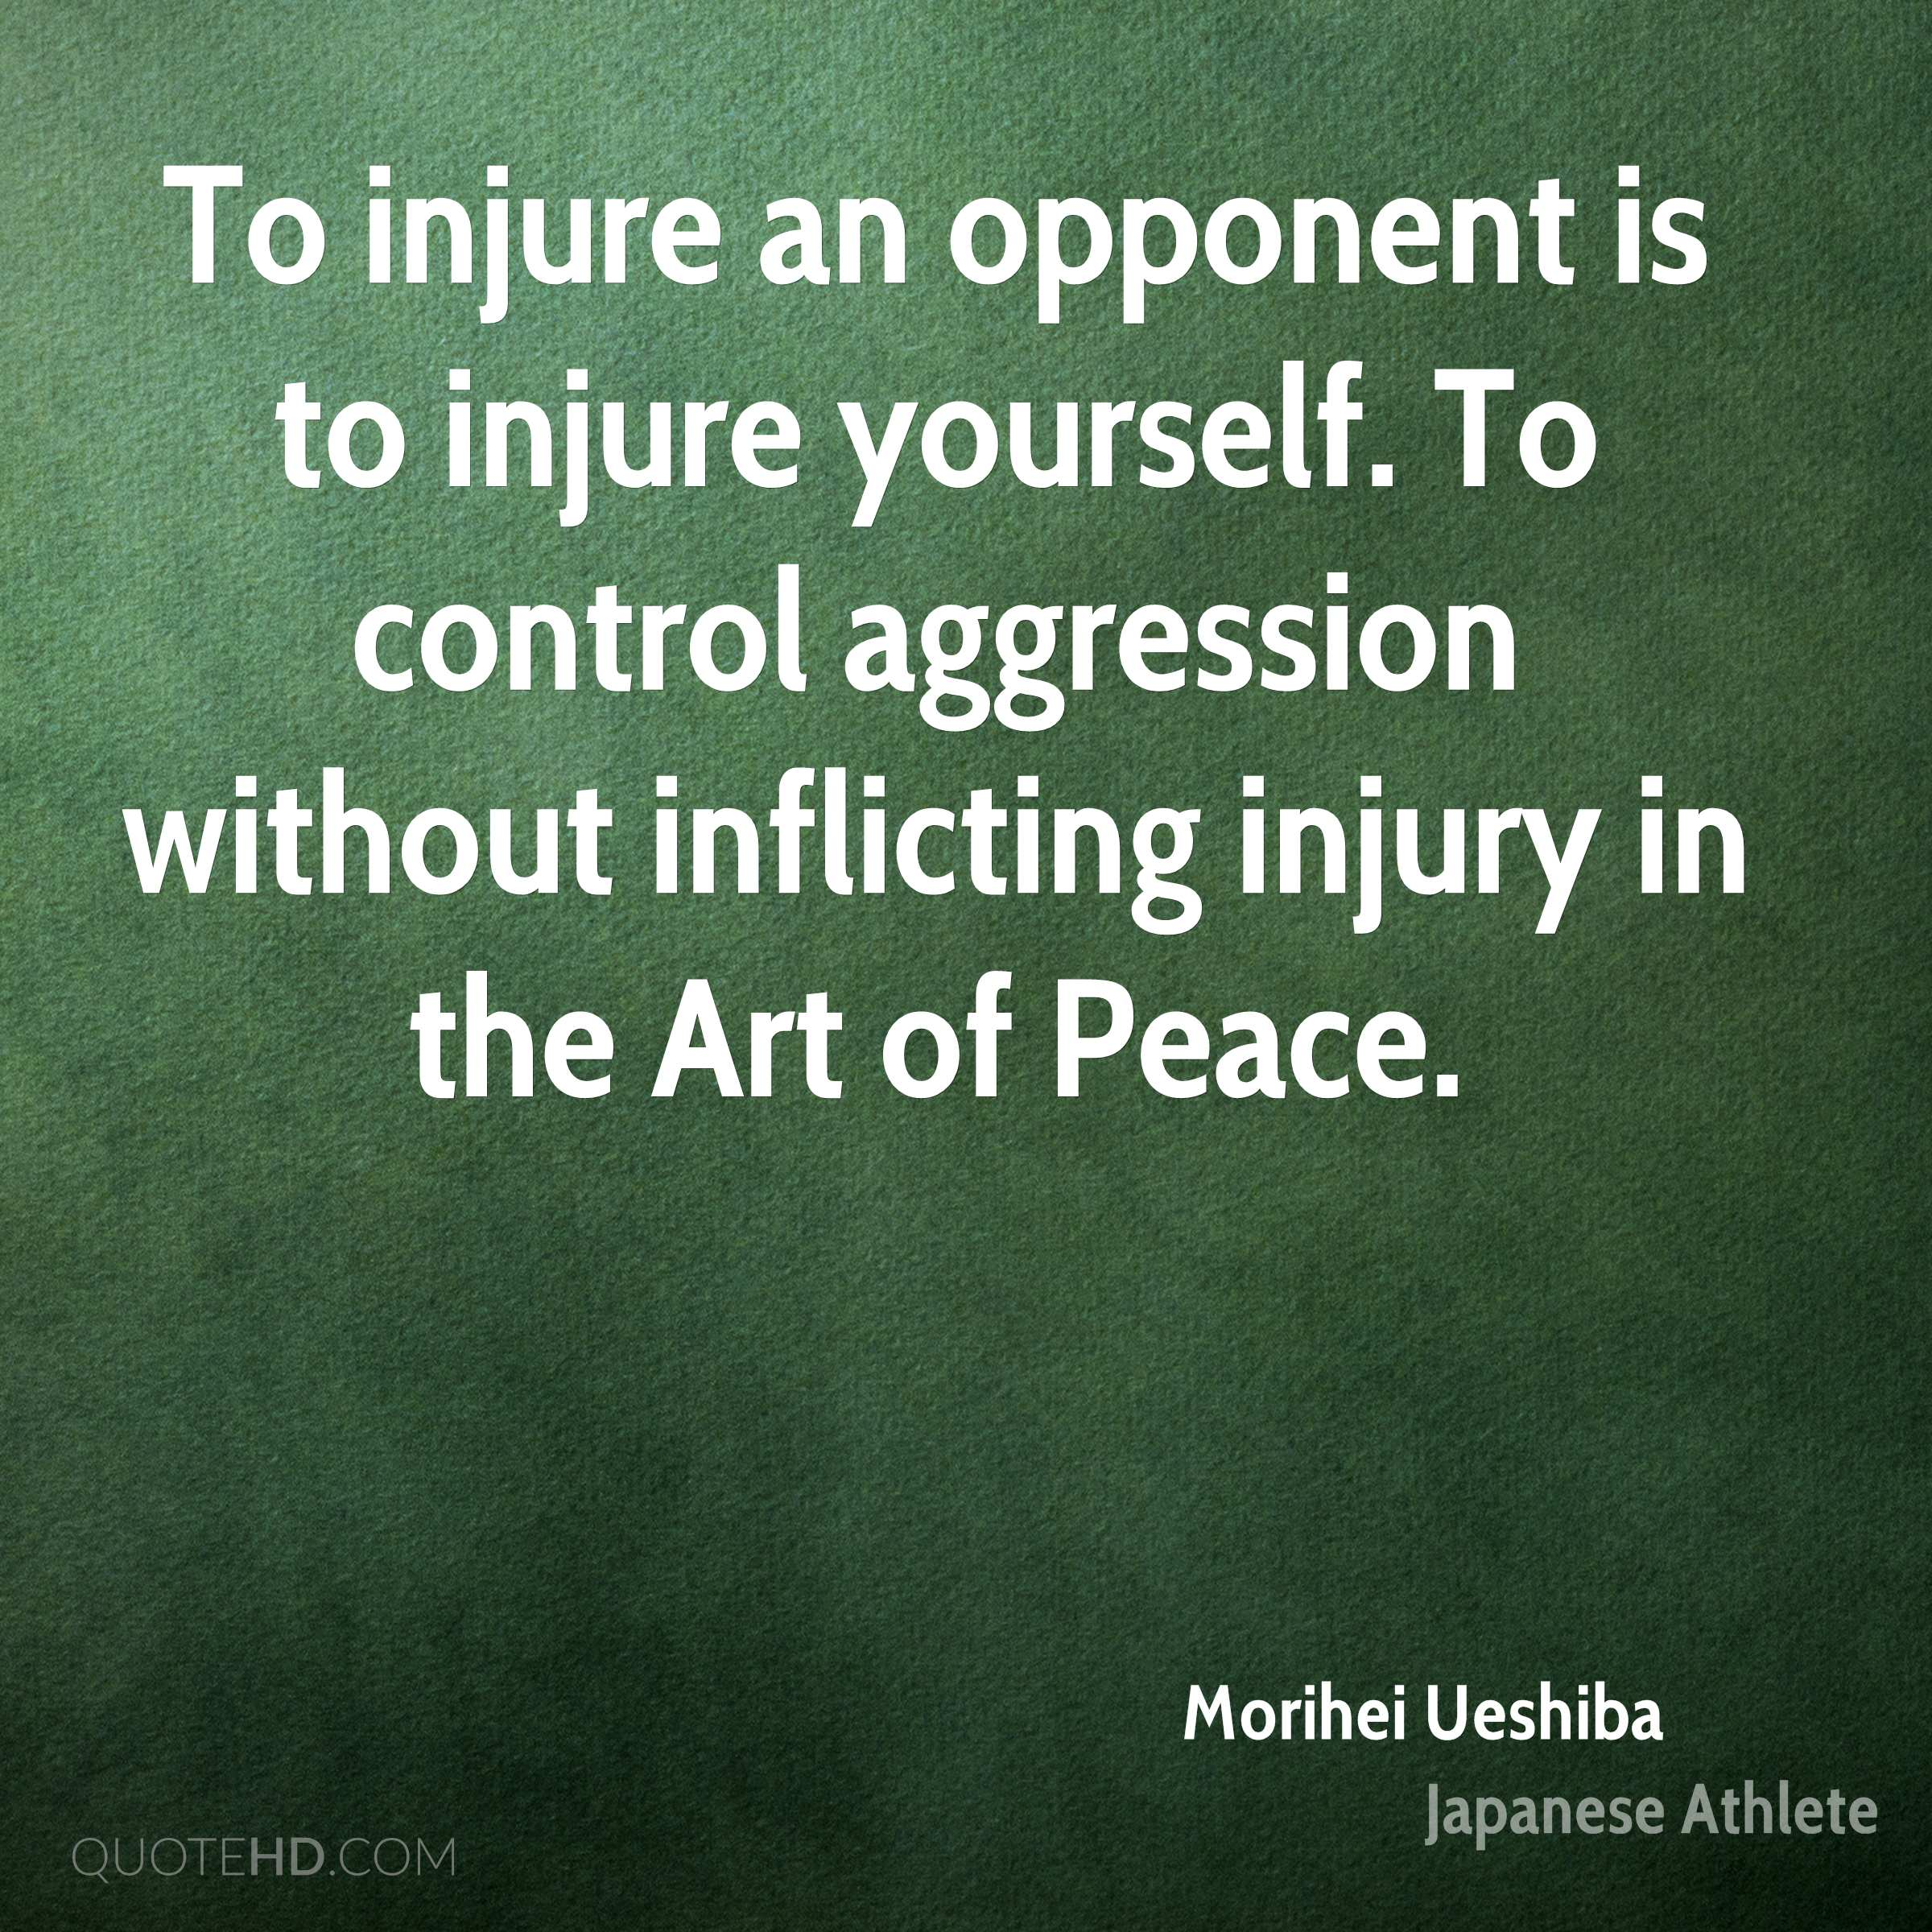 To injure an opponent is to injure yourself. To control aggression without inflicting injury in the Art of Peace.